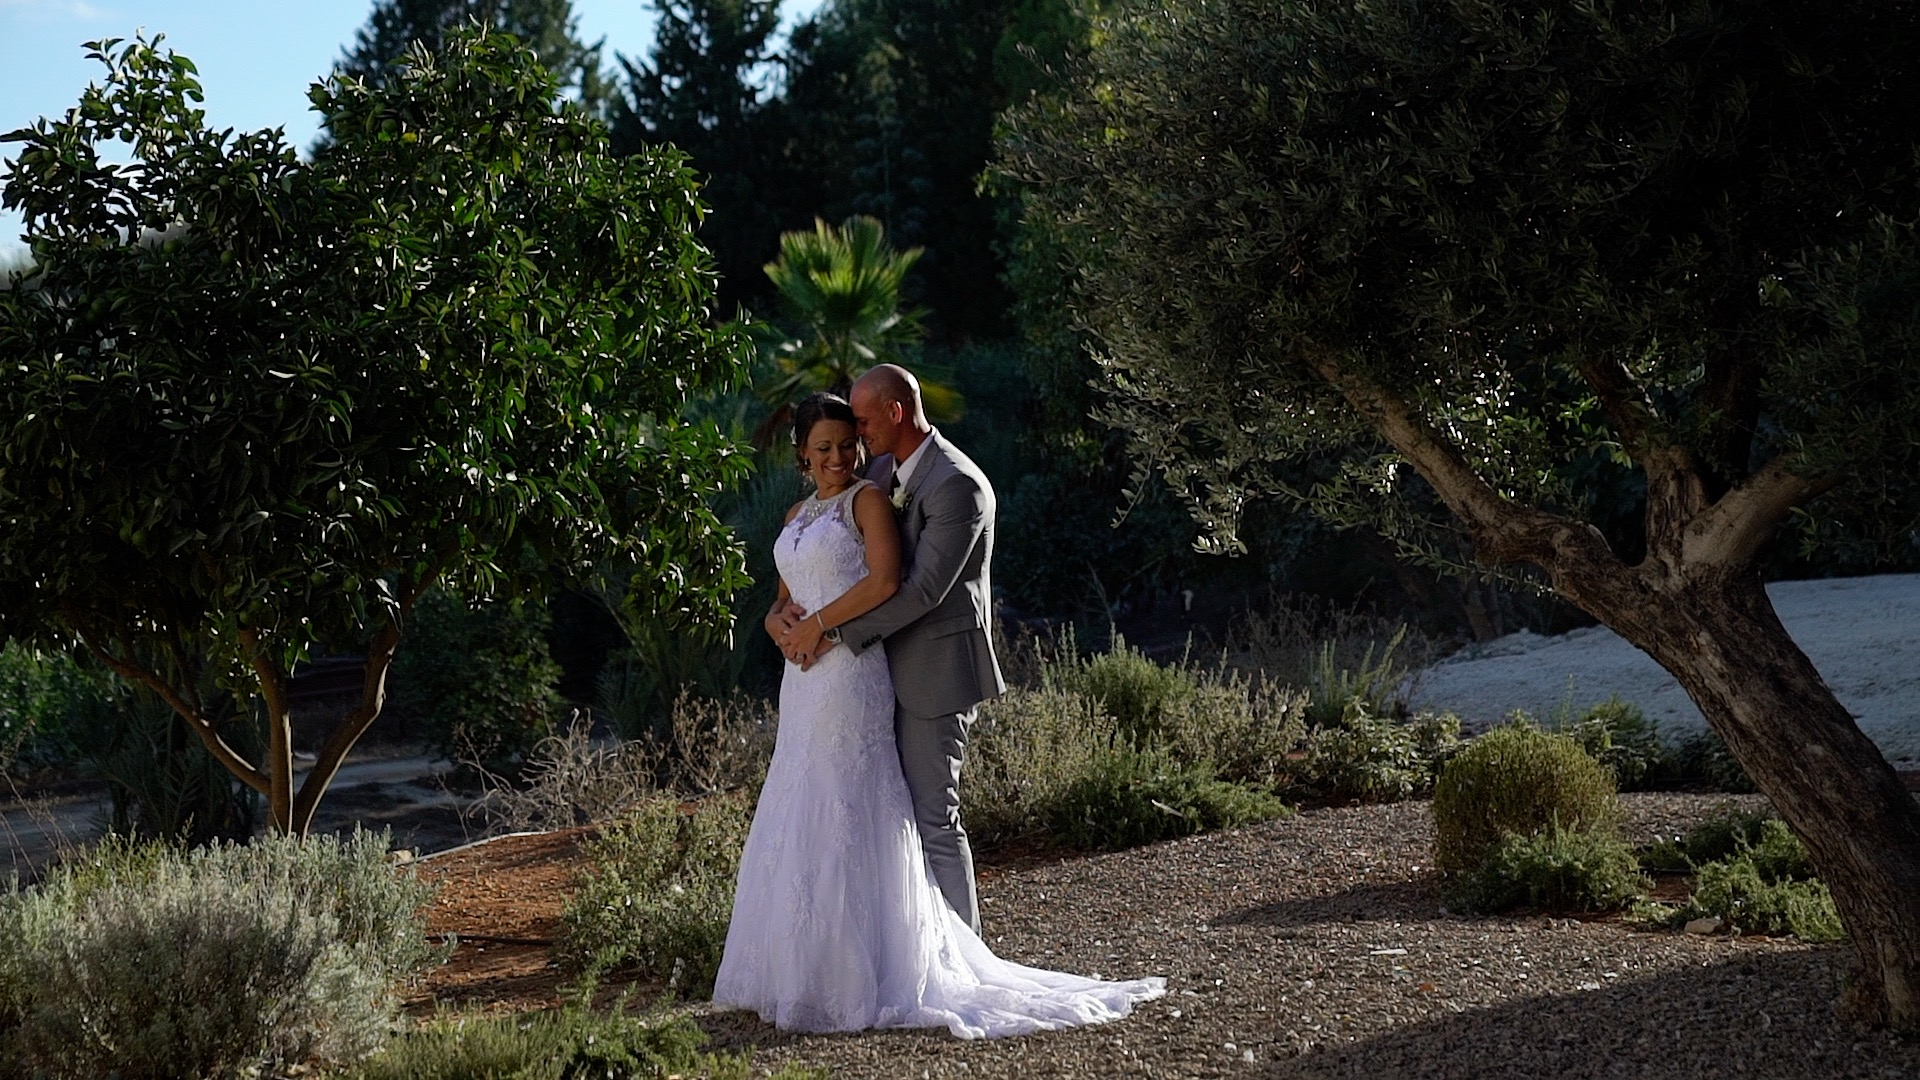 Getting married at Villa Bologna